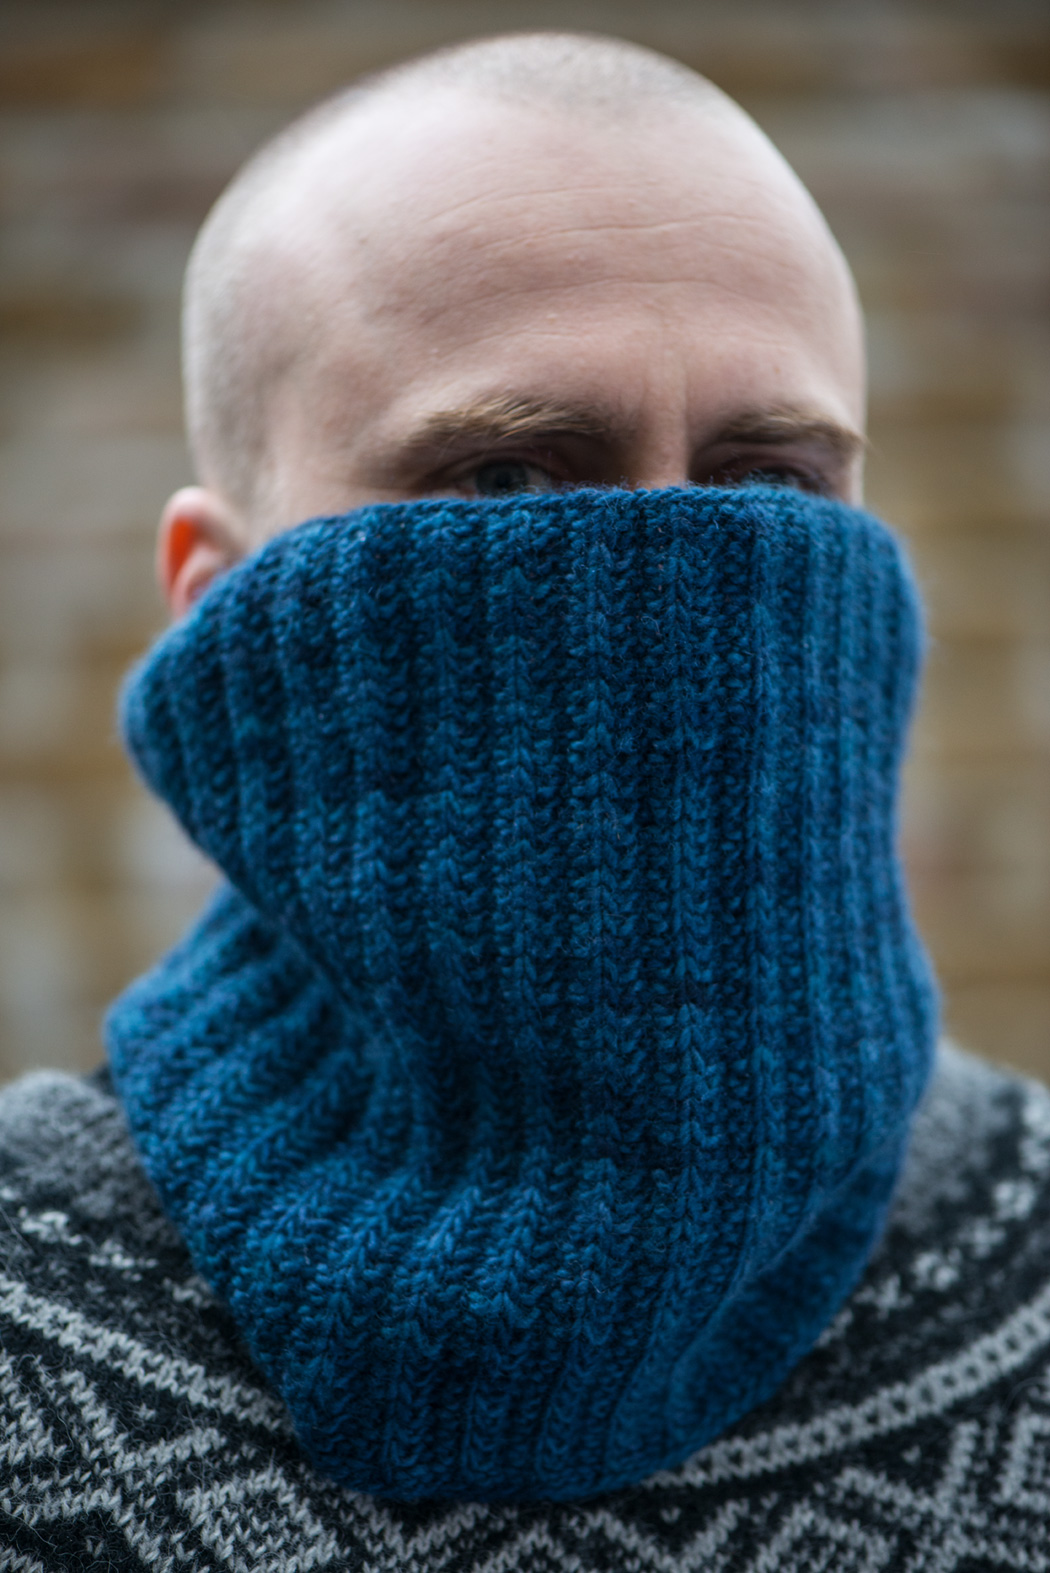 Man looking over the top of knitted cowl